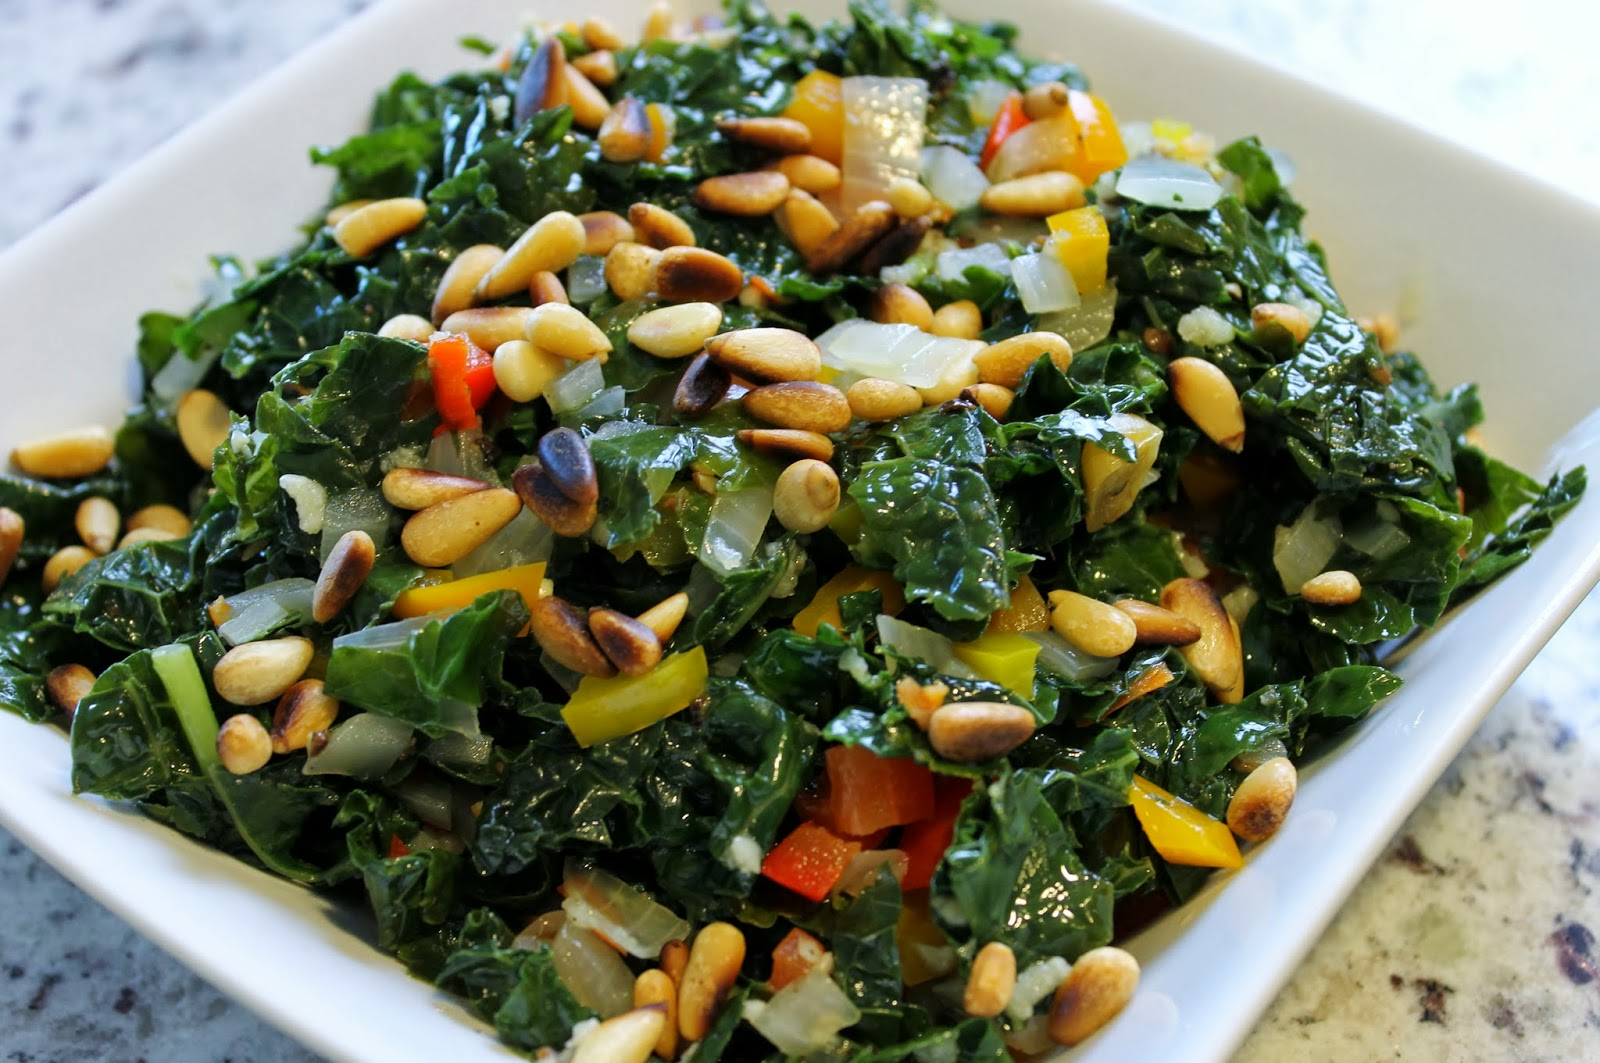 ... CW's Cafe Today - Tuscany Kale with Bell Peppers & Toasted Pine Nuts